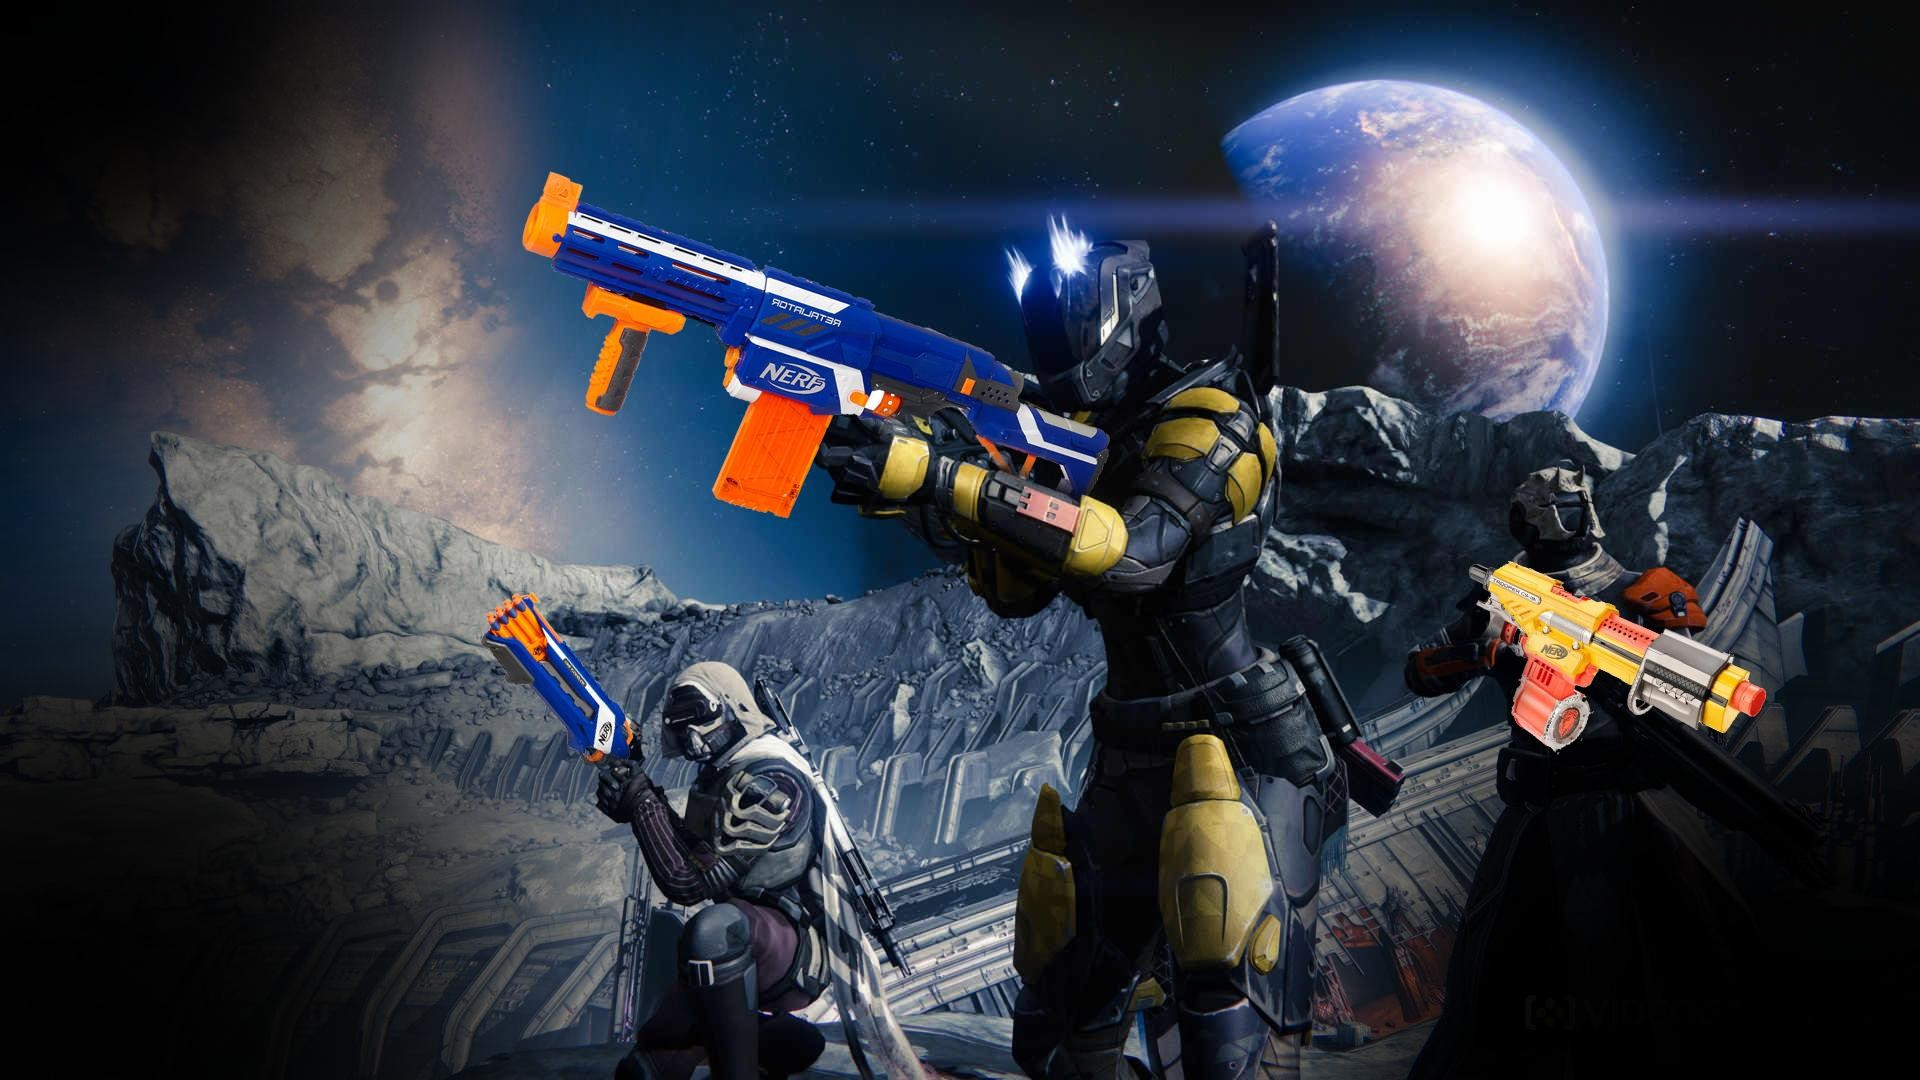 Destiny: House of Wolves contents datamined from latest patch .